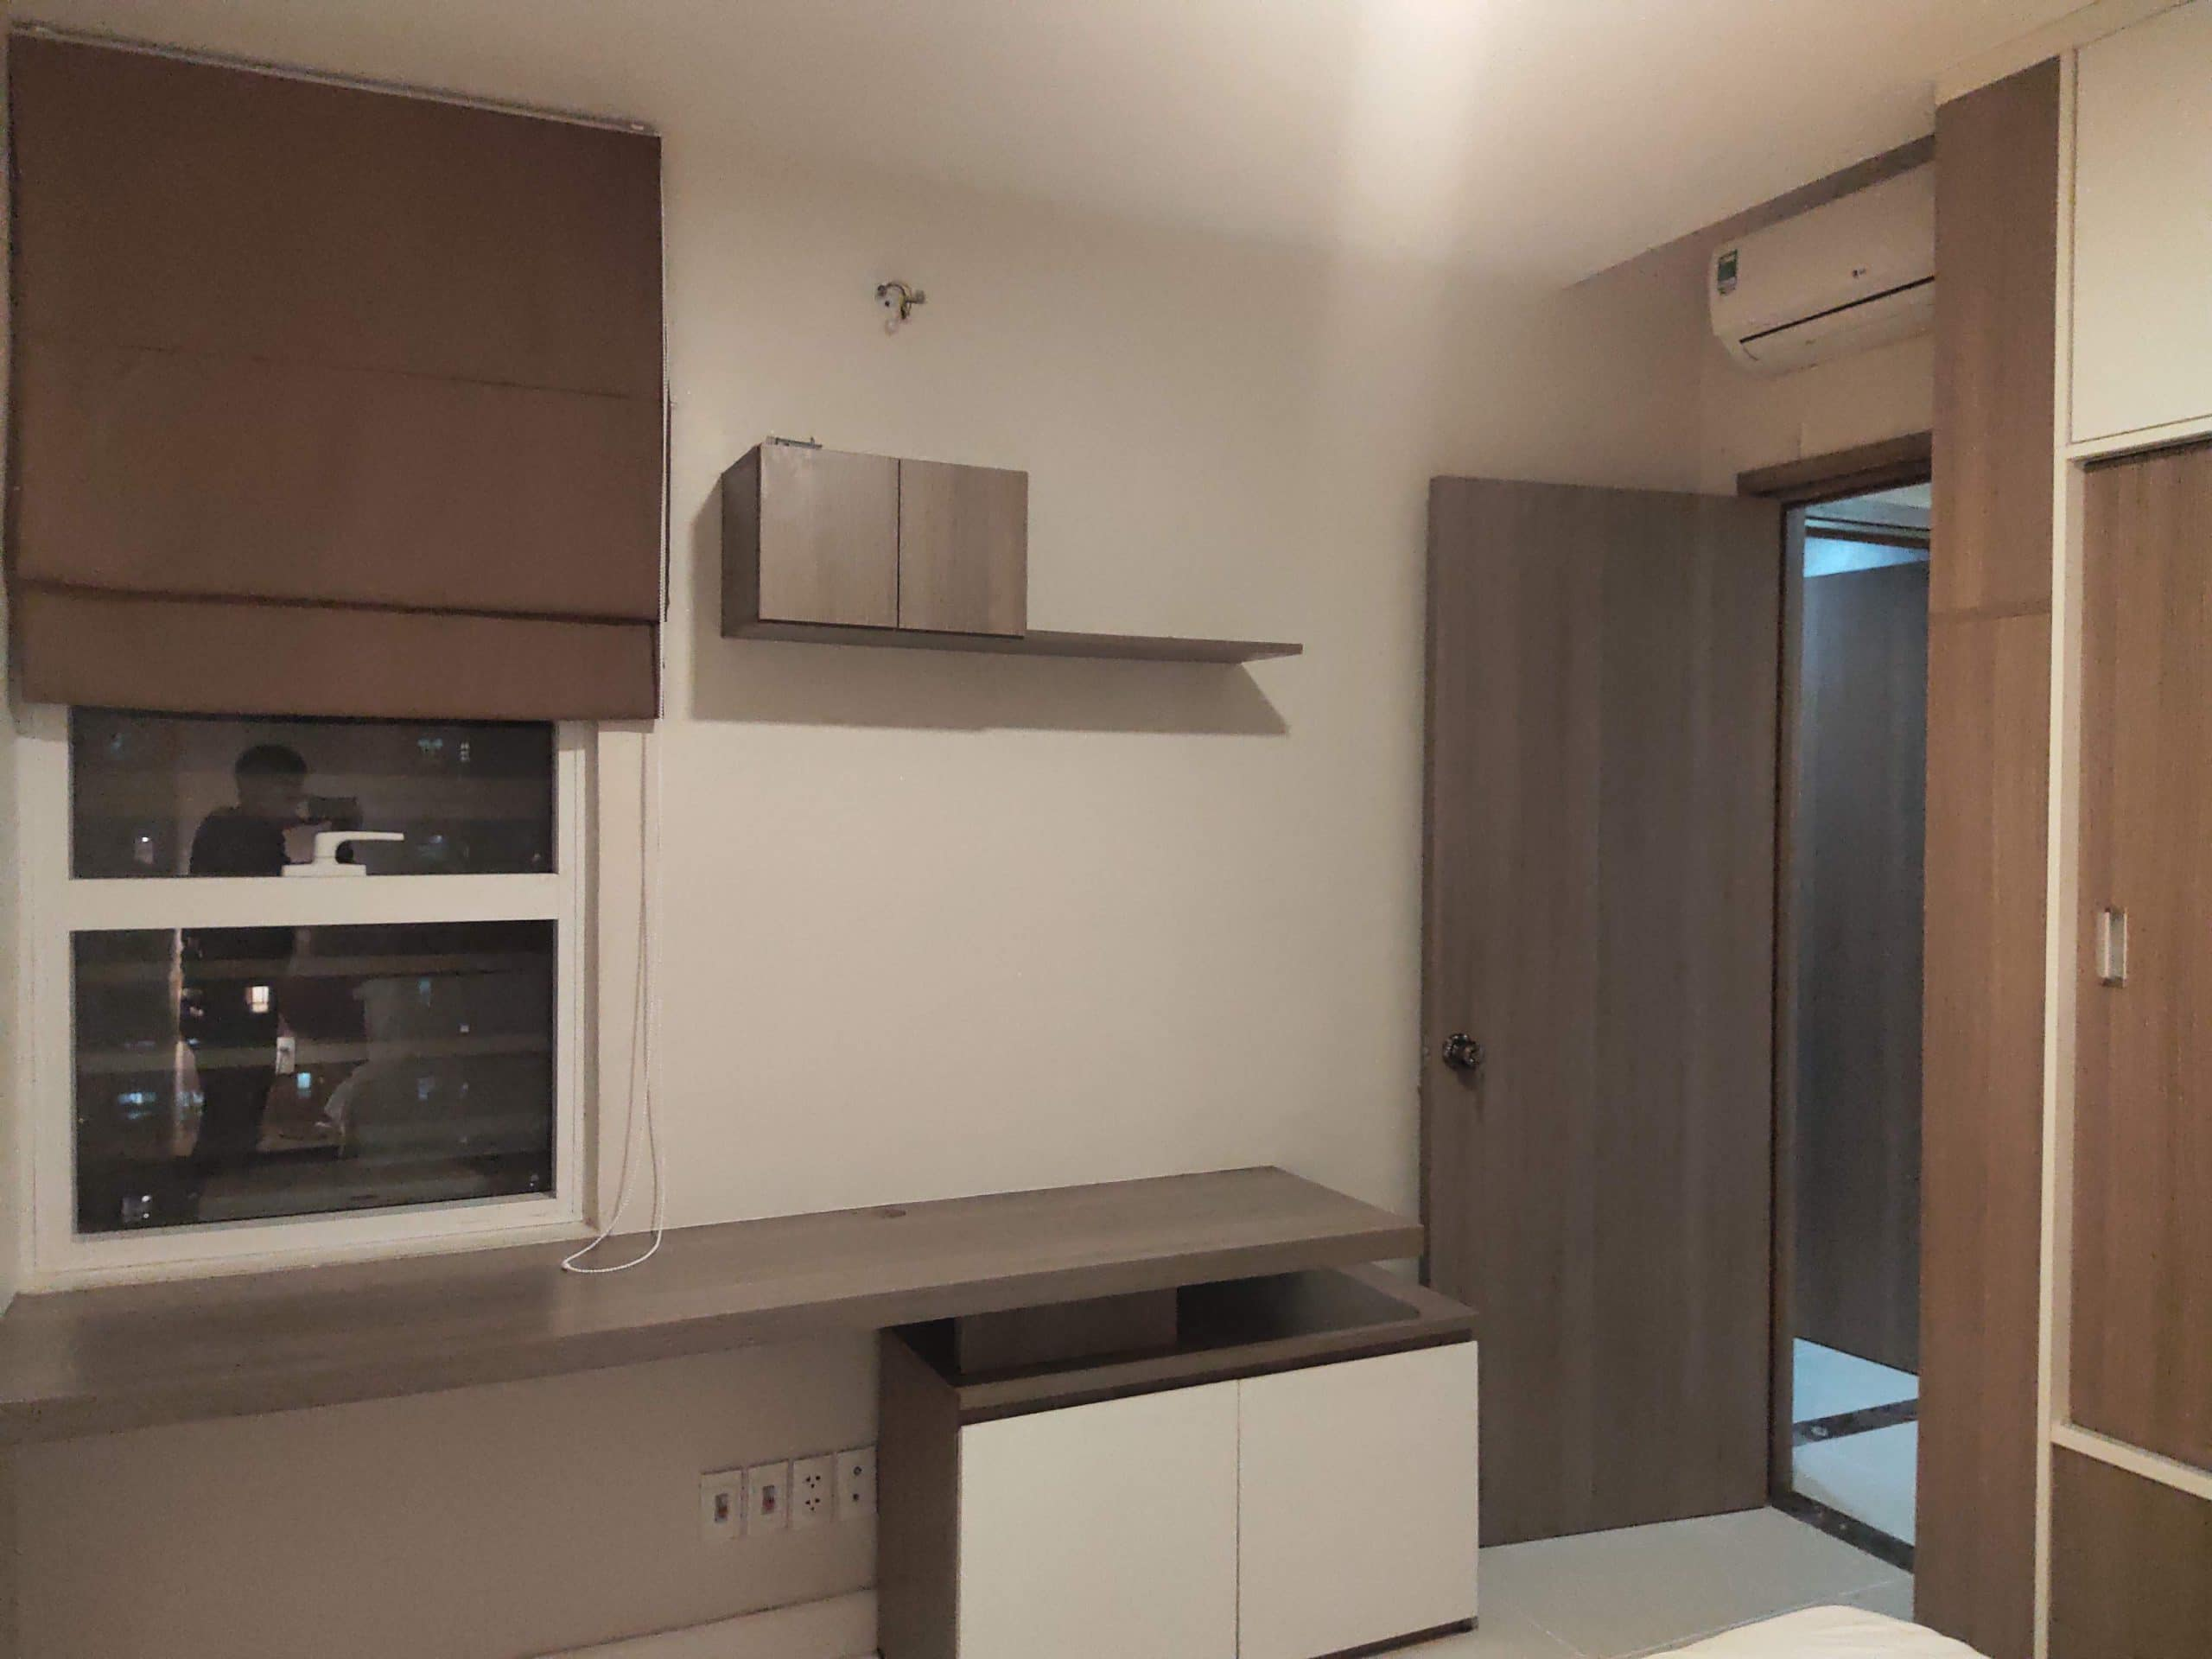 How wonderful your life is by living in this gorgeous apartment at Lexington